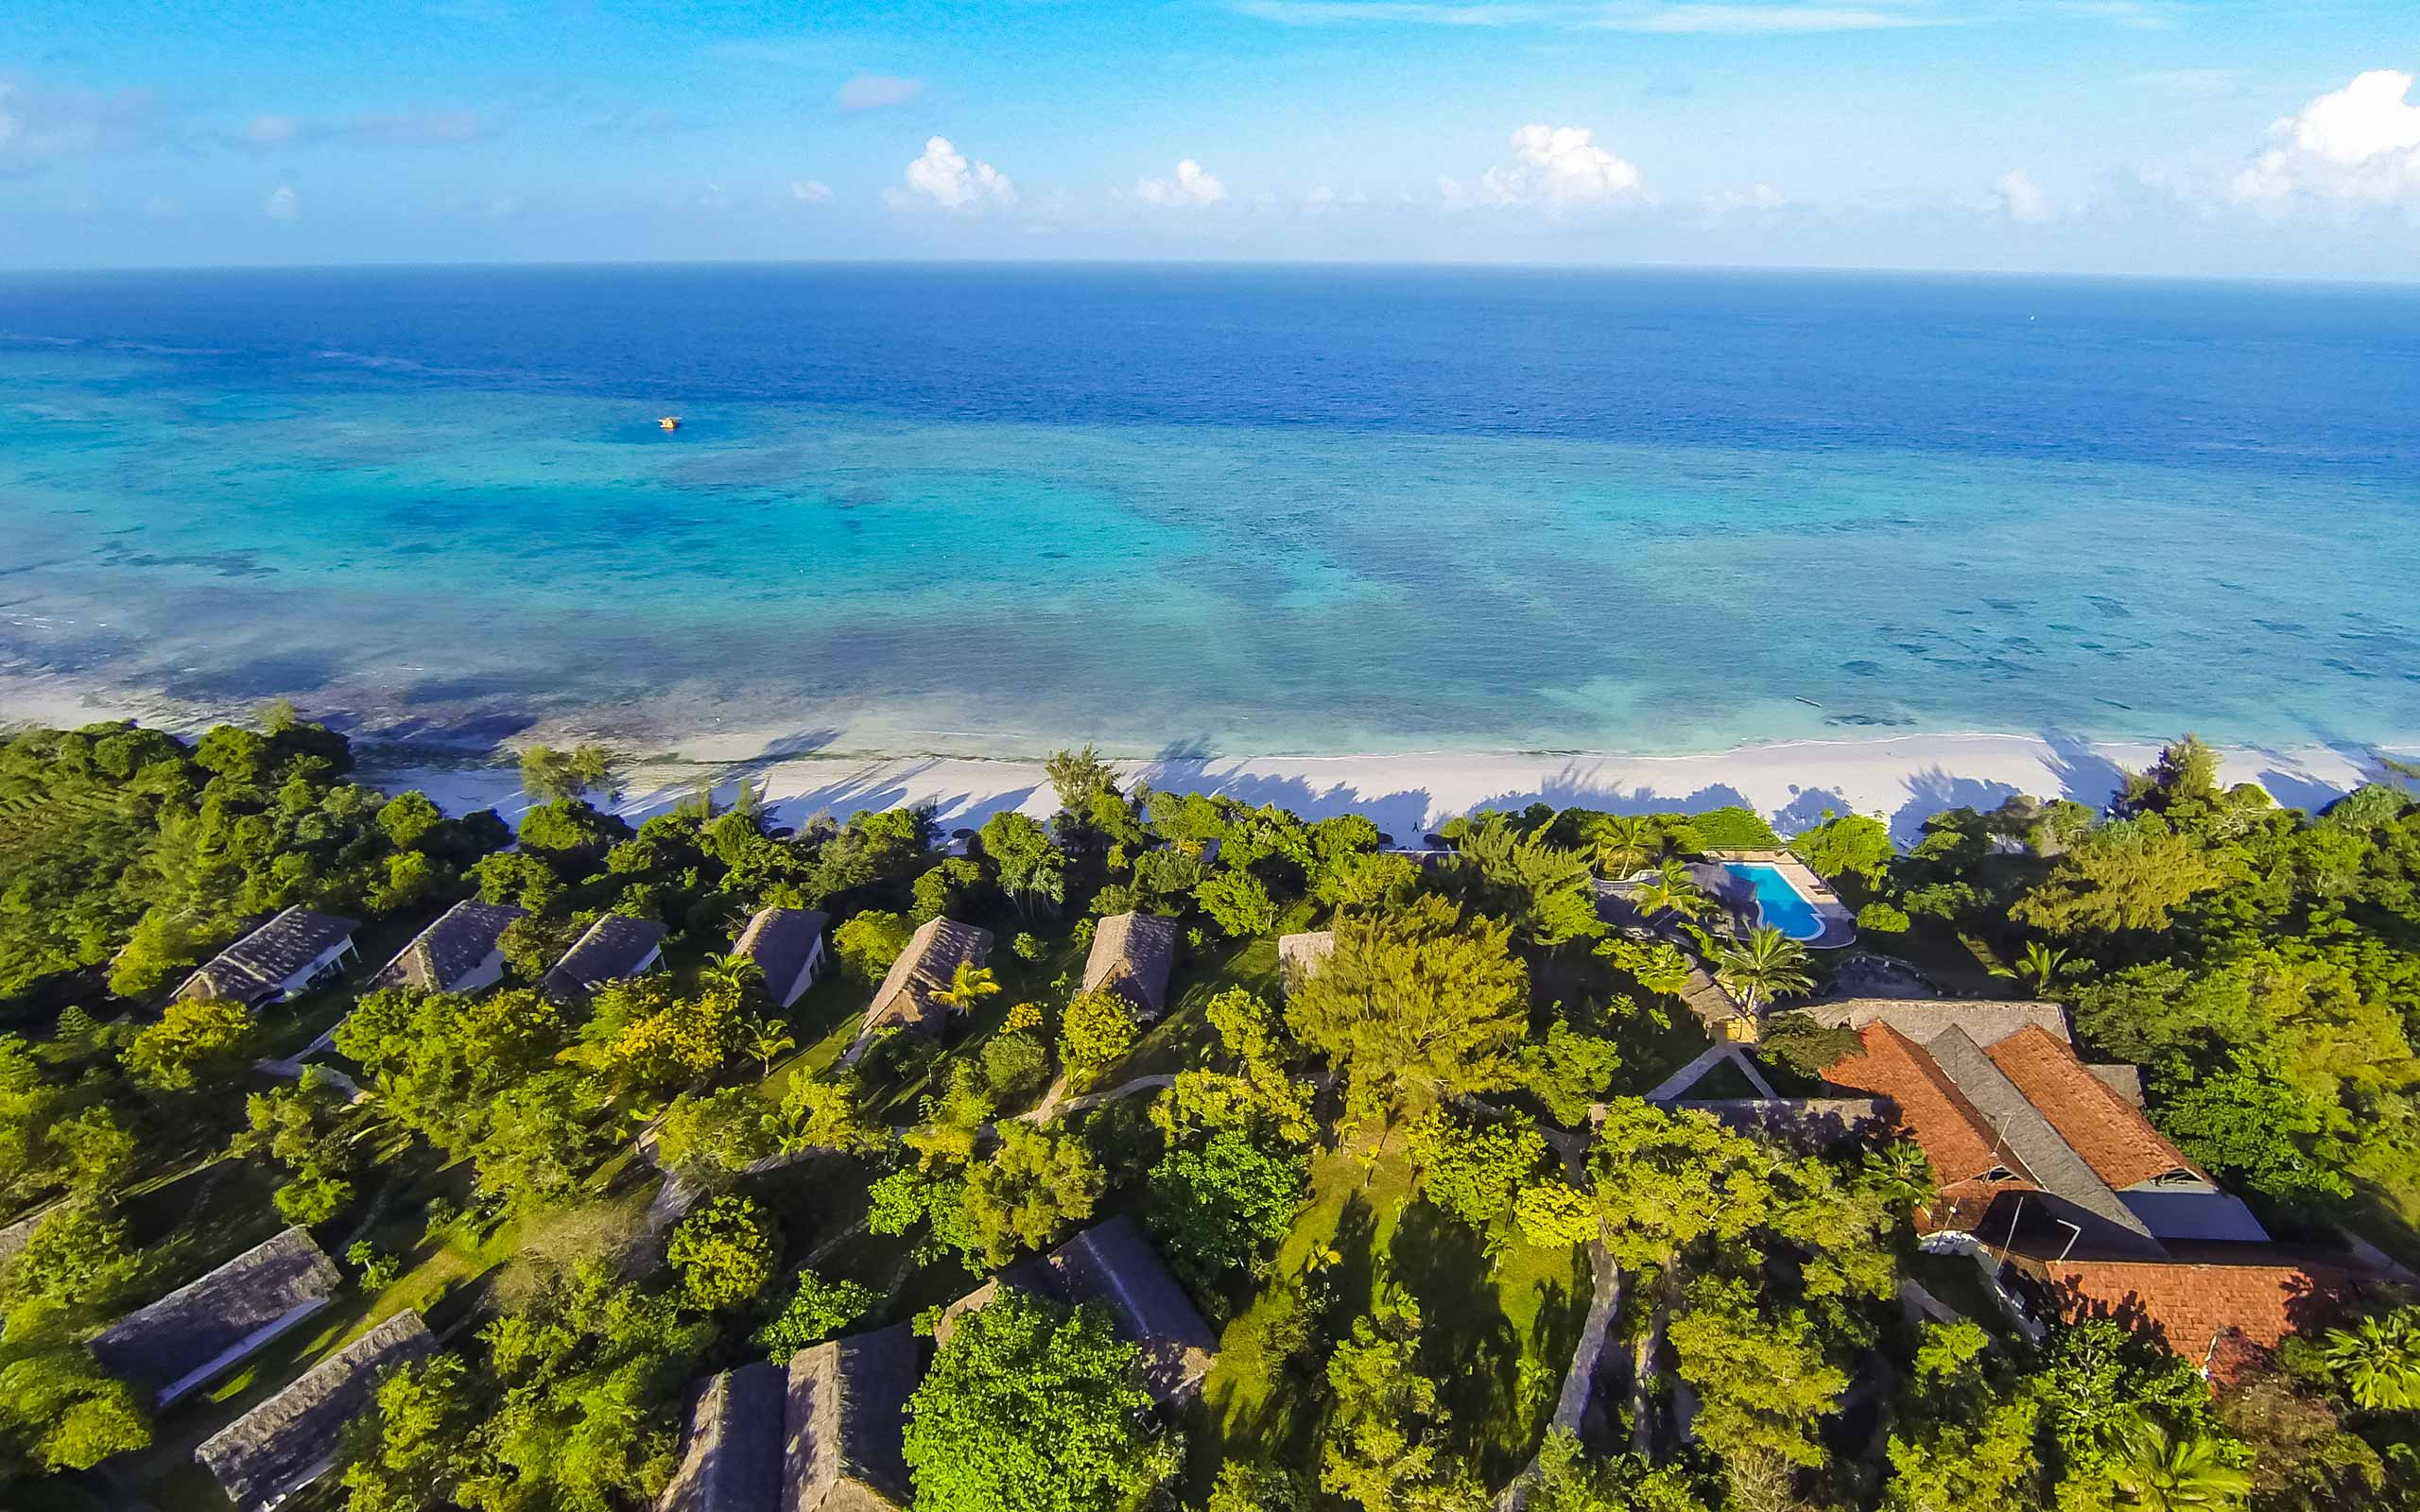 enkosi-africa-safari-zanzibar-pemba-island-the-manta-resort-view